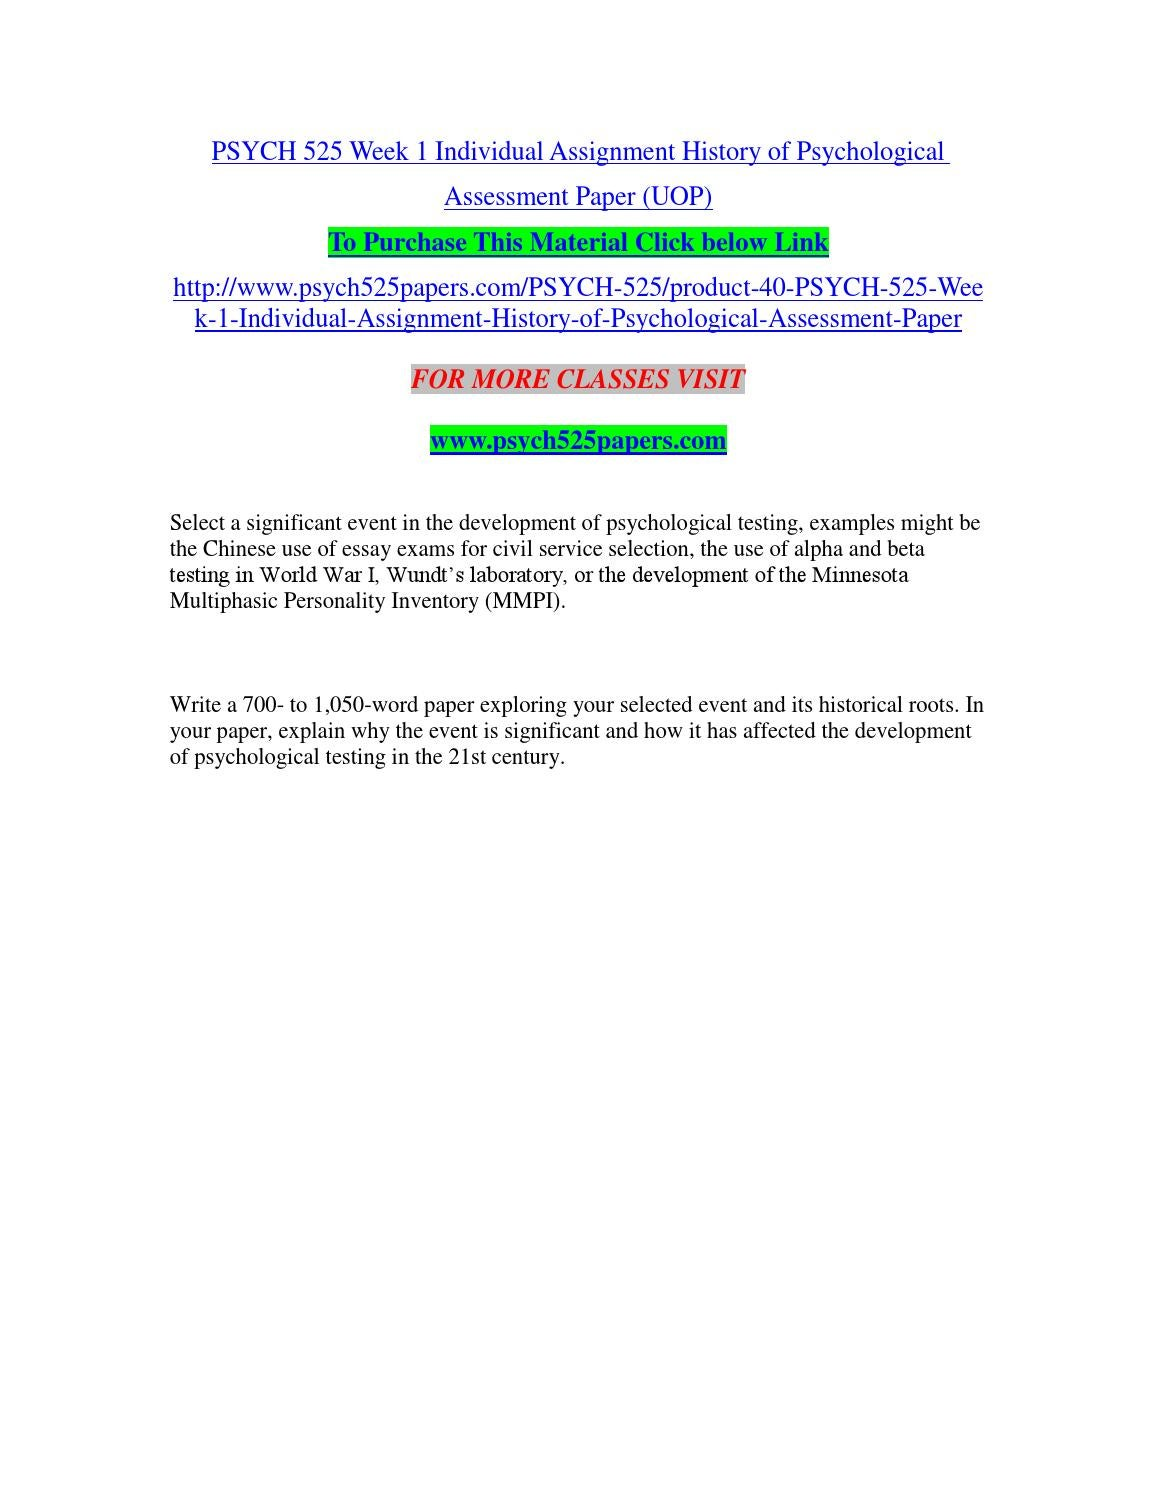 Psych 525 week 1 individual assignment history of psychological assessment  paper (uop) by sandwijain110 - issuu